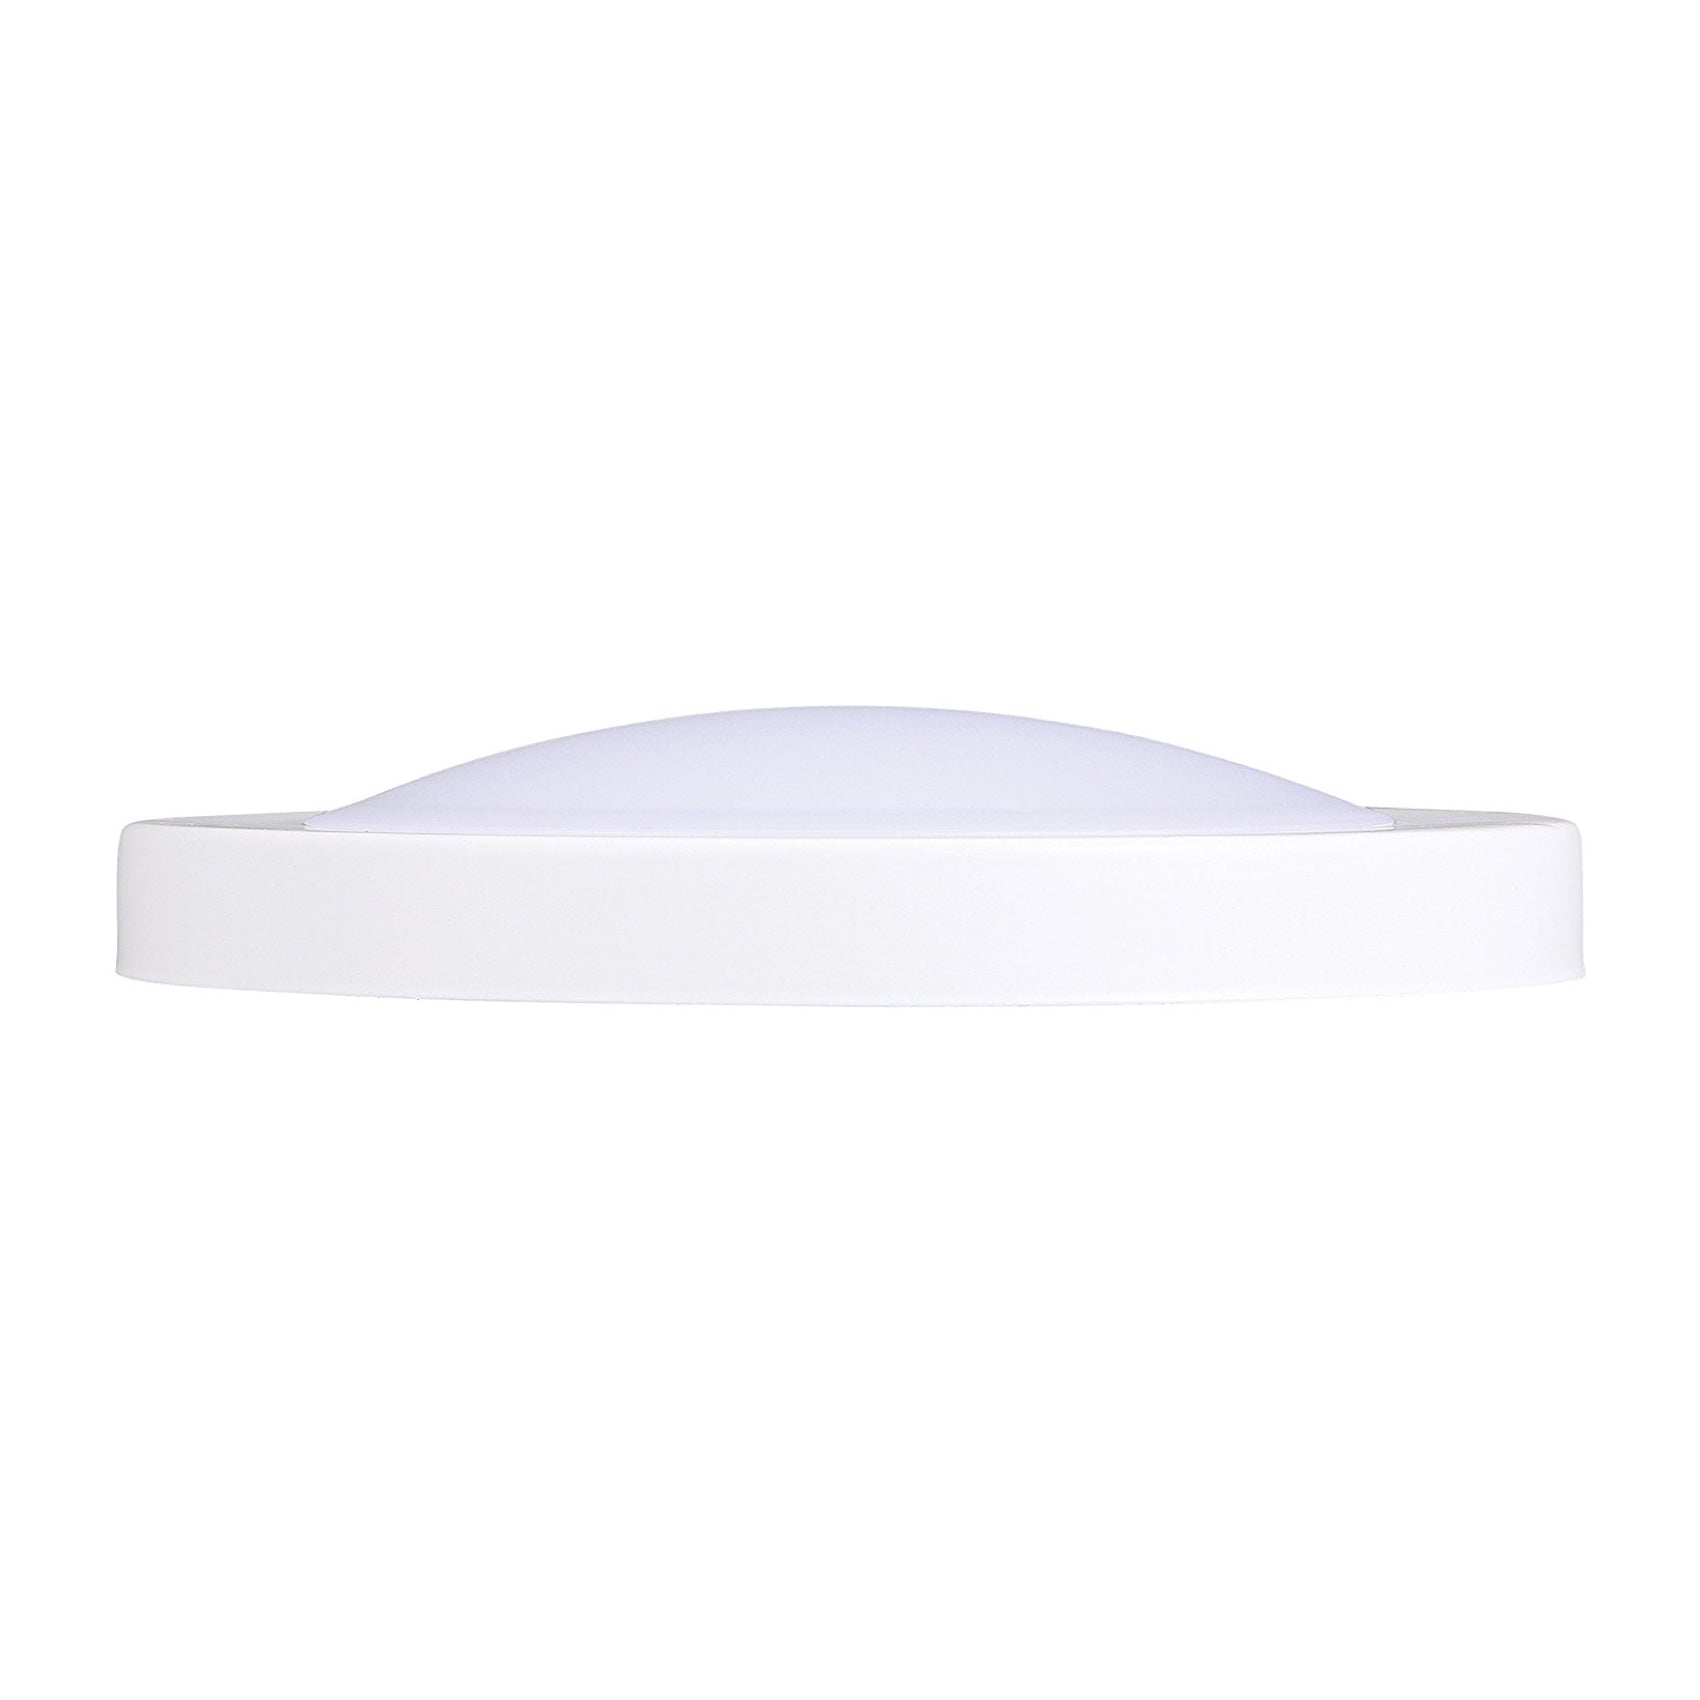 Flush Mount Ceiling Light, 7.5-inch, Dimmable LED, White Finish, Wet Location, 120V/12W/840lm